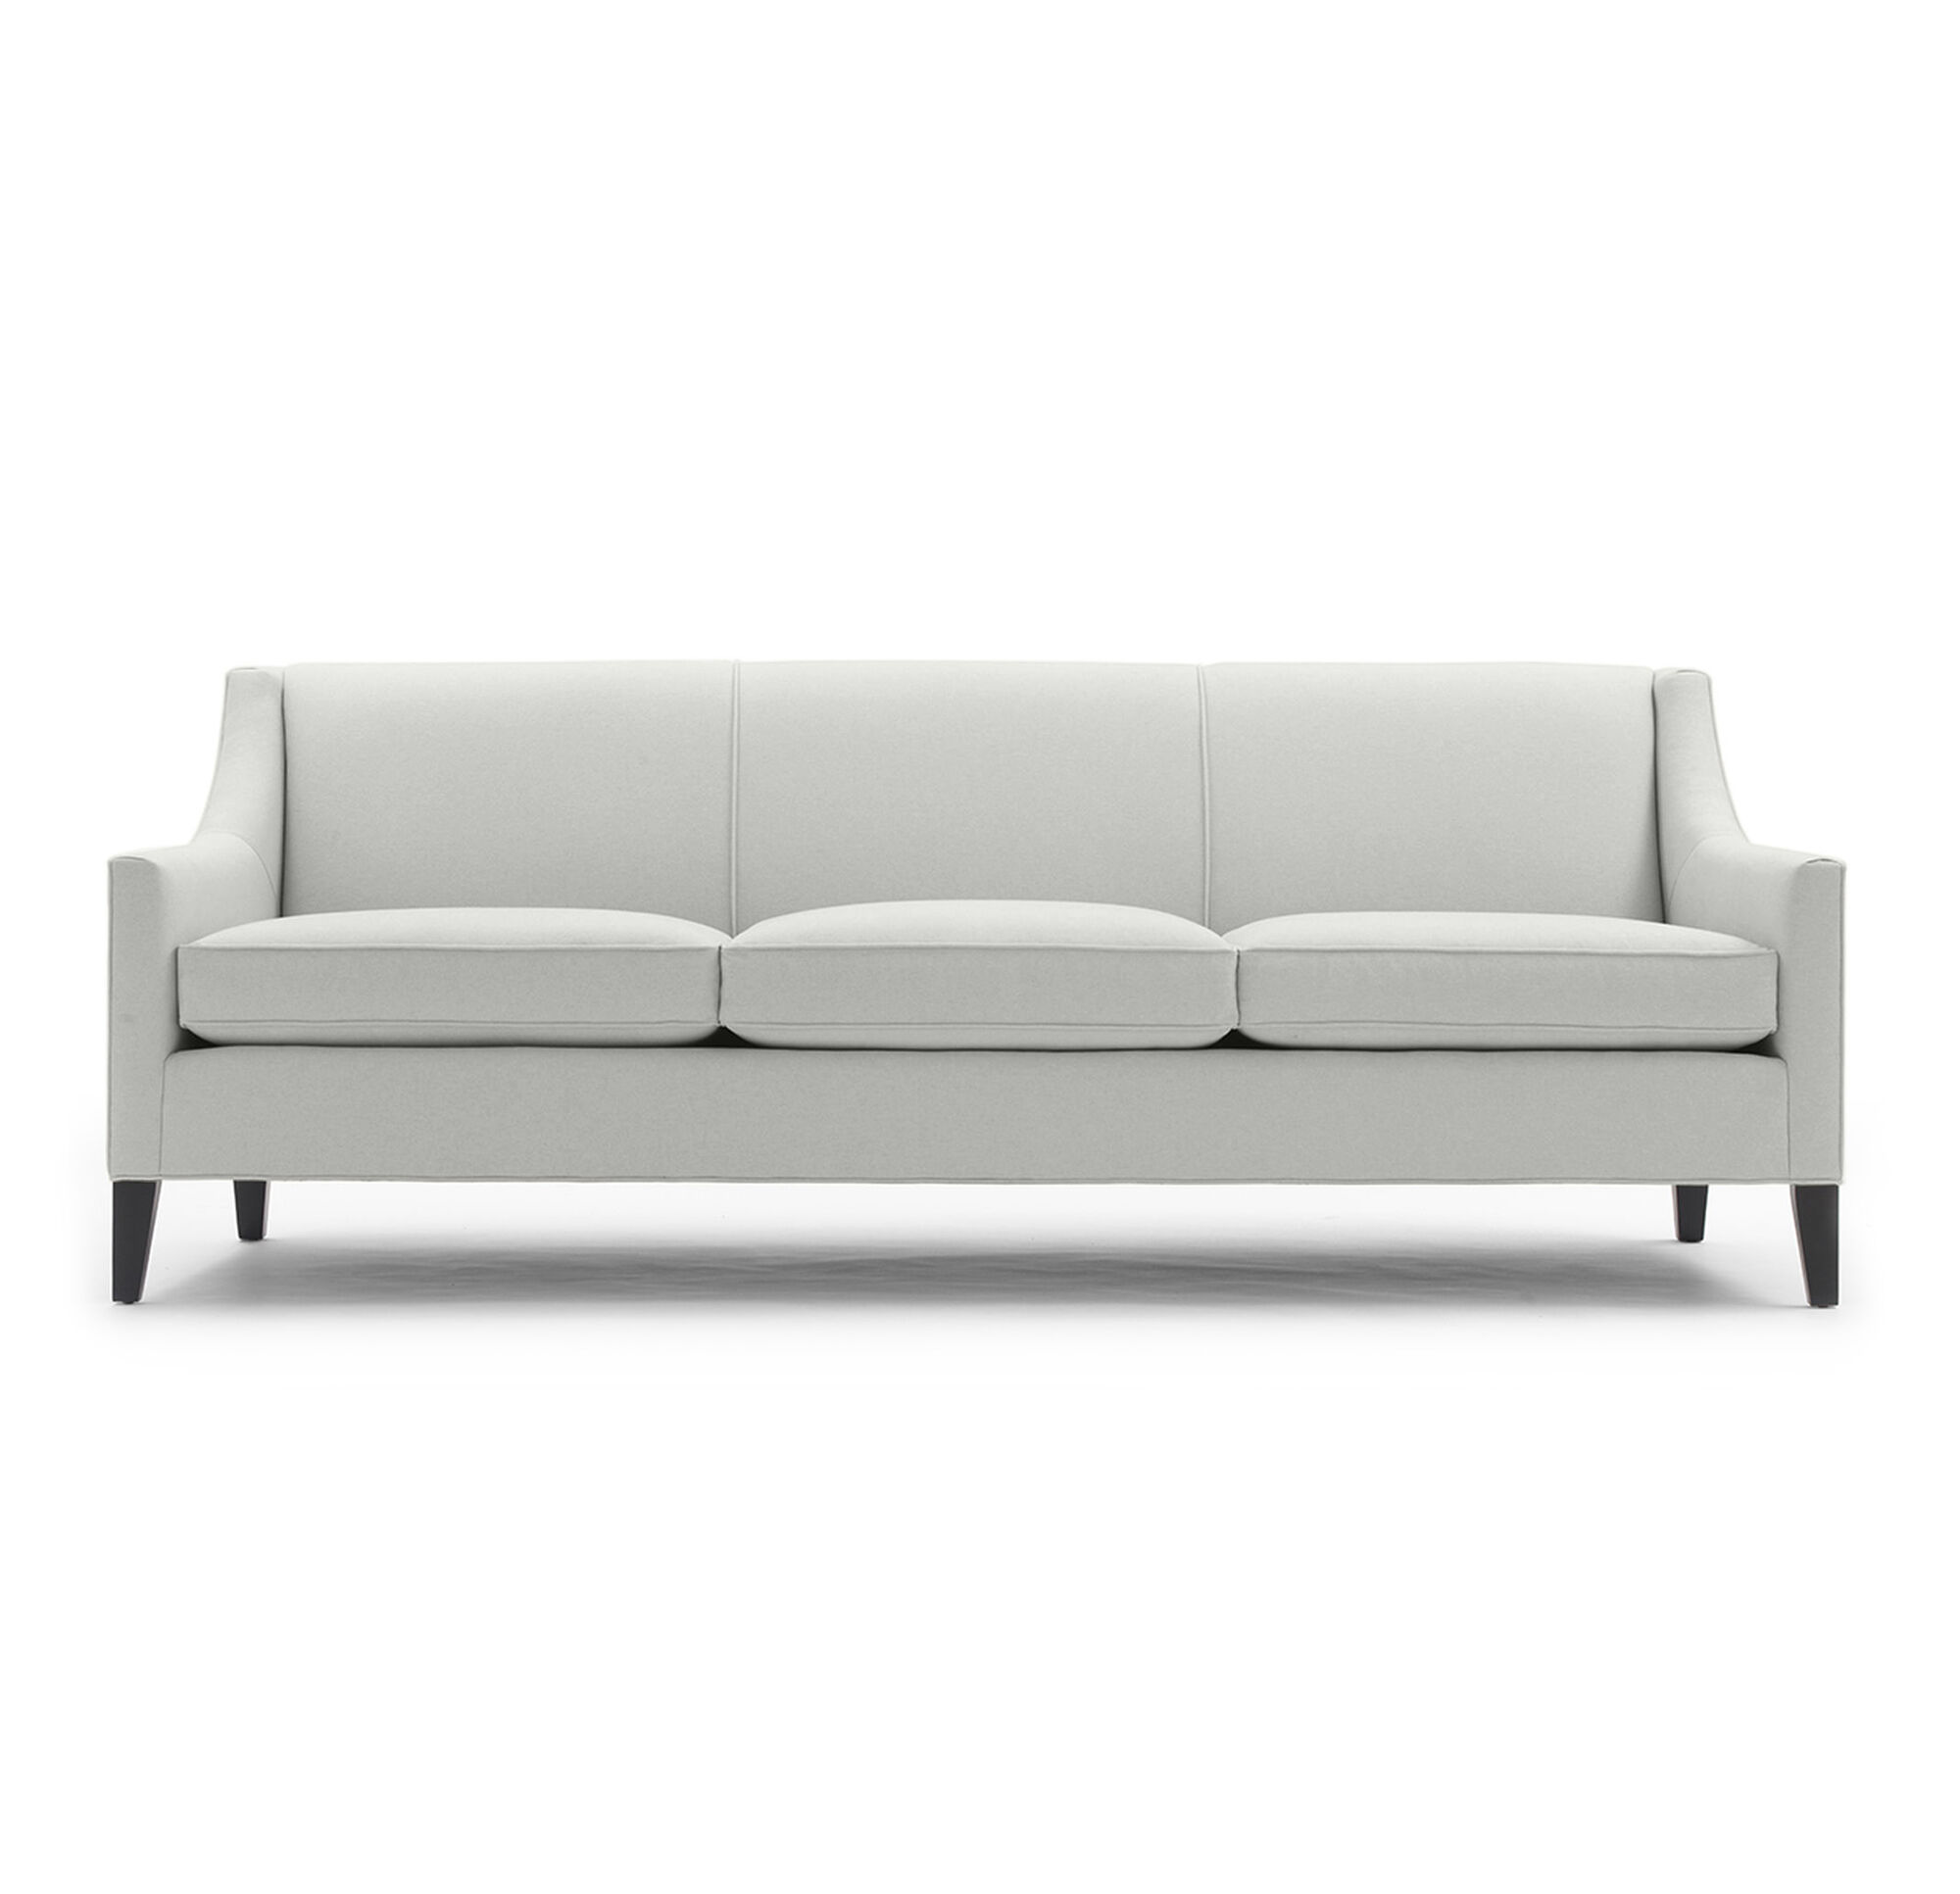 CARA SOFA PHIPPS - STONE hi-res  sc 1 st  Sofas : alan white sectional - Sectionals, Sofas & Couches